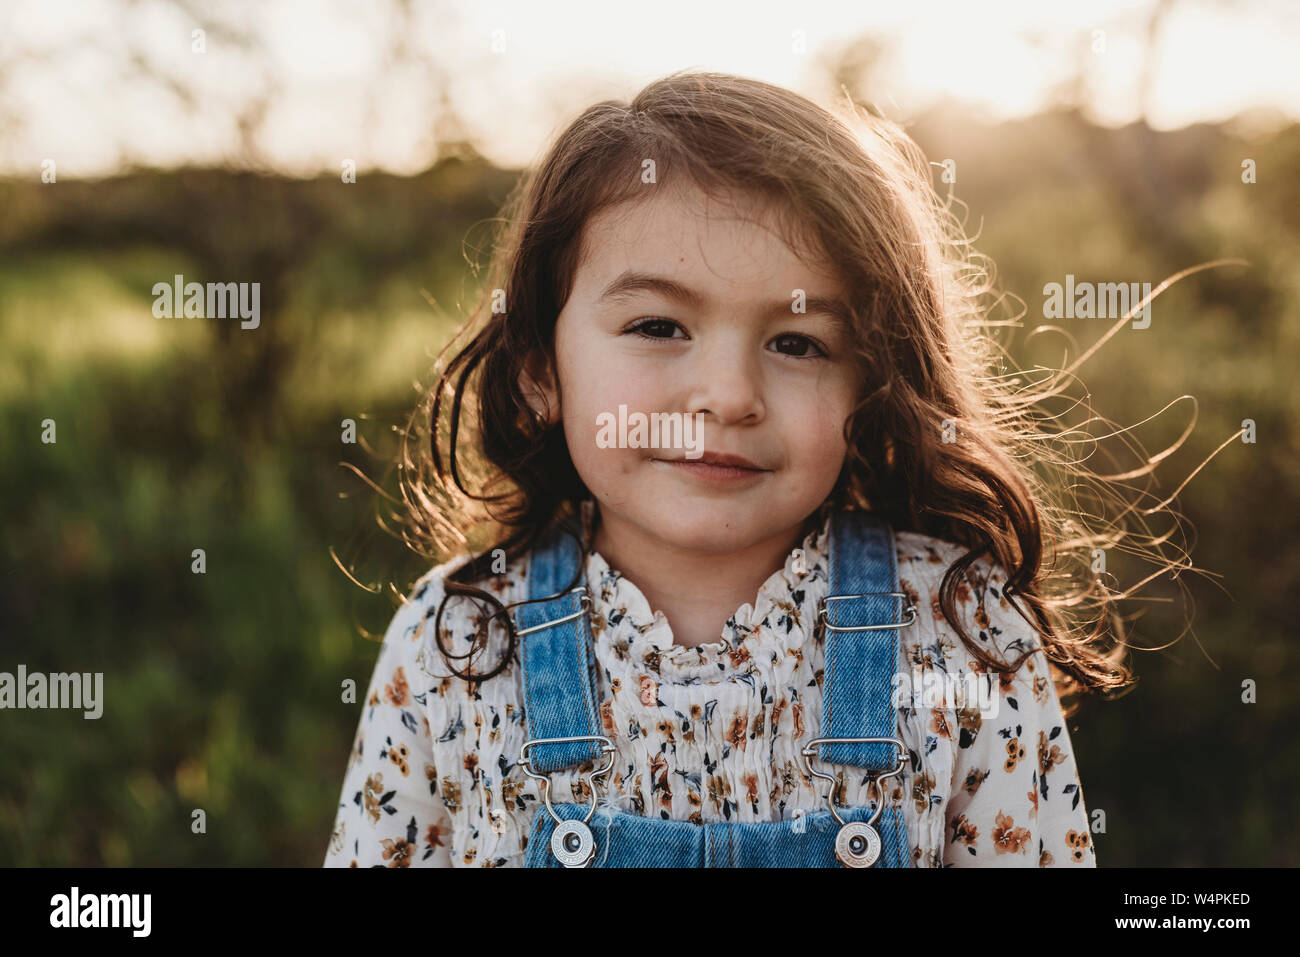 Portrait of young school-aged girl with sunlight in her hair Stock Photo